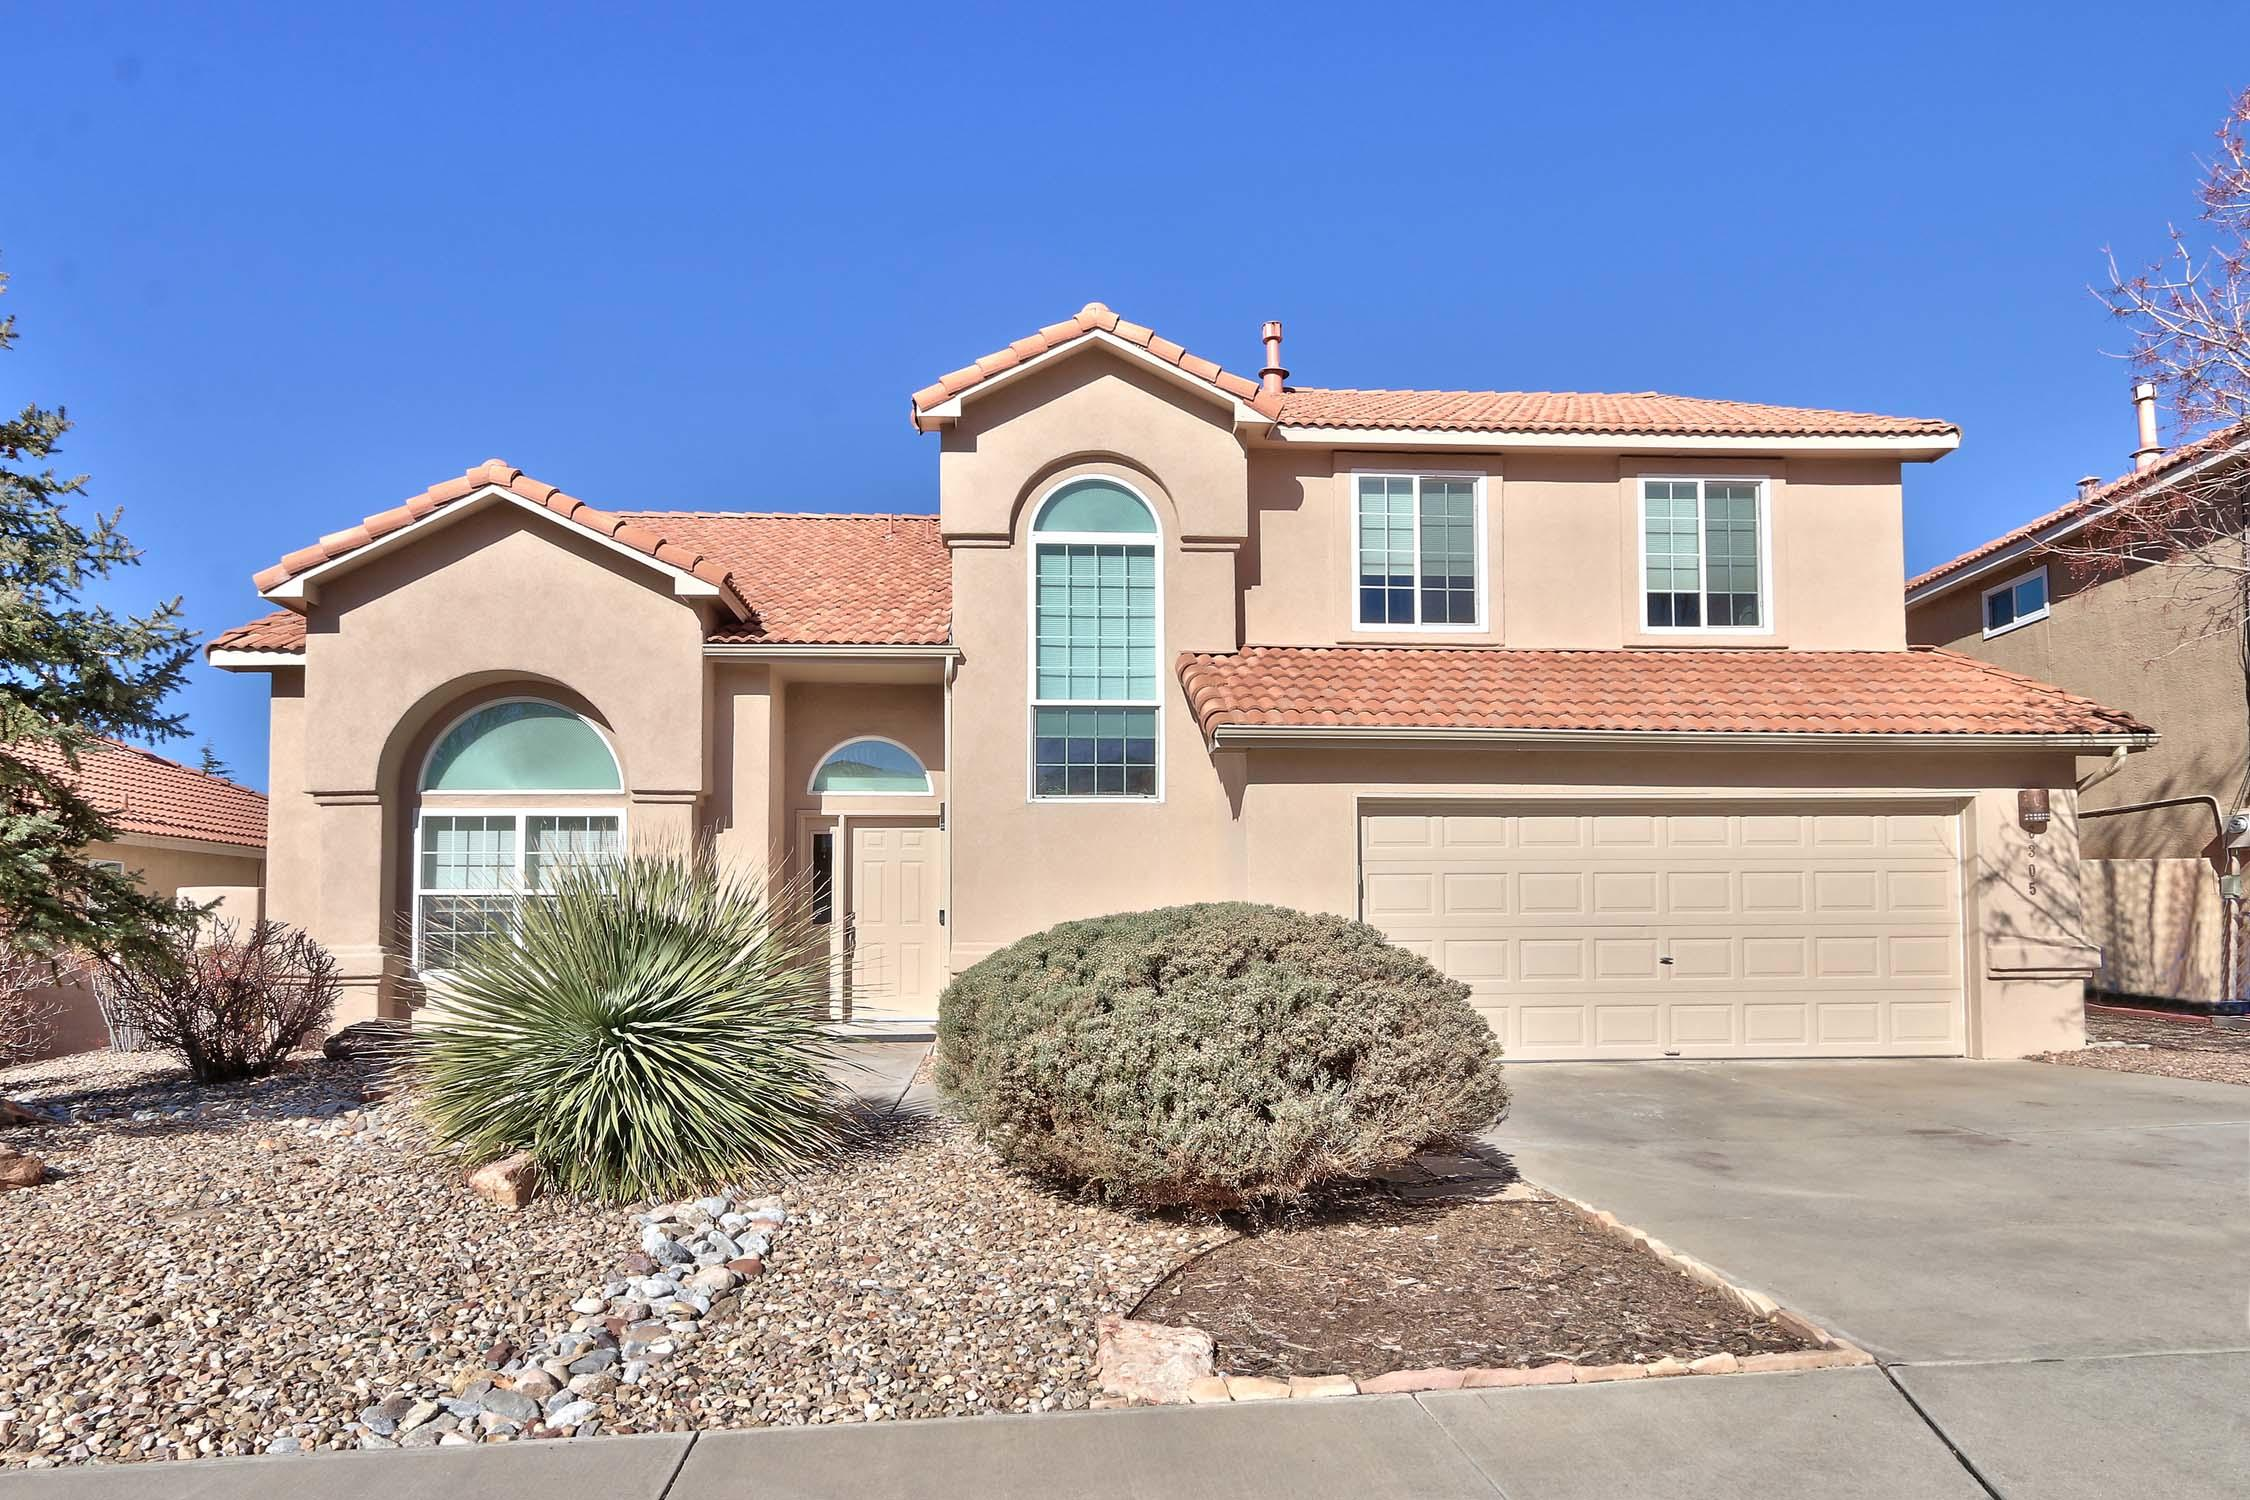 This beautuful one owner  home has been lovingly cared for, gently updated and ready for your buyer who is looking for great entertaining areas both inside and out. Updates includePella Windows, 2 HVAC units, ugraded light fixtures, upgraded Patio door, Kitchen granite, newer stainless steel appliances, professionally landscaped front and back, 4 Seasons Patio shade and High efficiency W/D.  There is plenty of room for a home office as well.Covid guidelines apply. Qualified buyers only. 2hour notice please. easy to showAll offers to be reviewed 6pm Sunday March 7